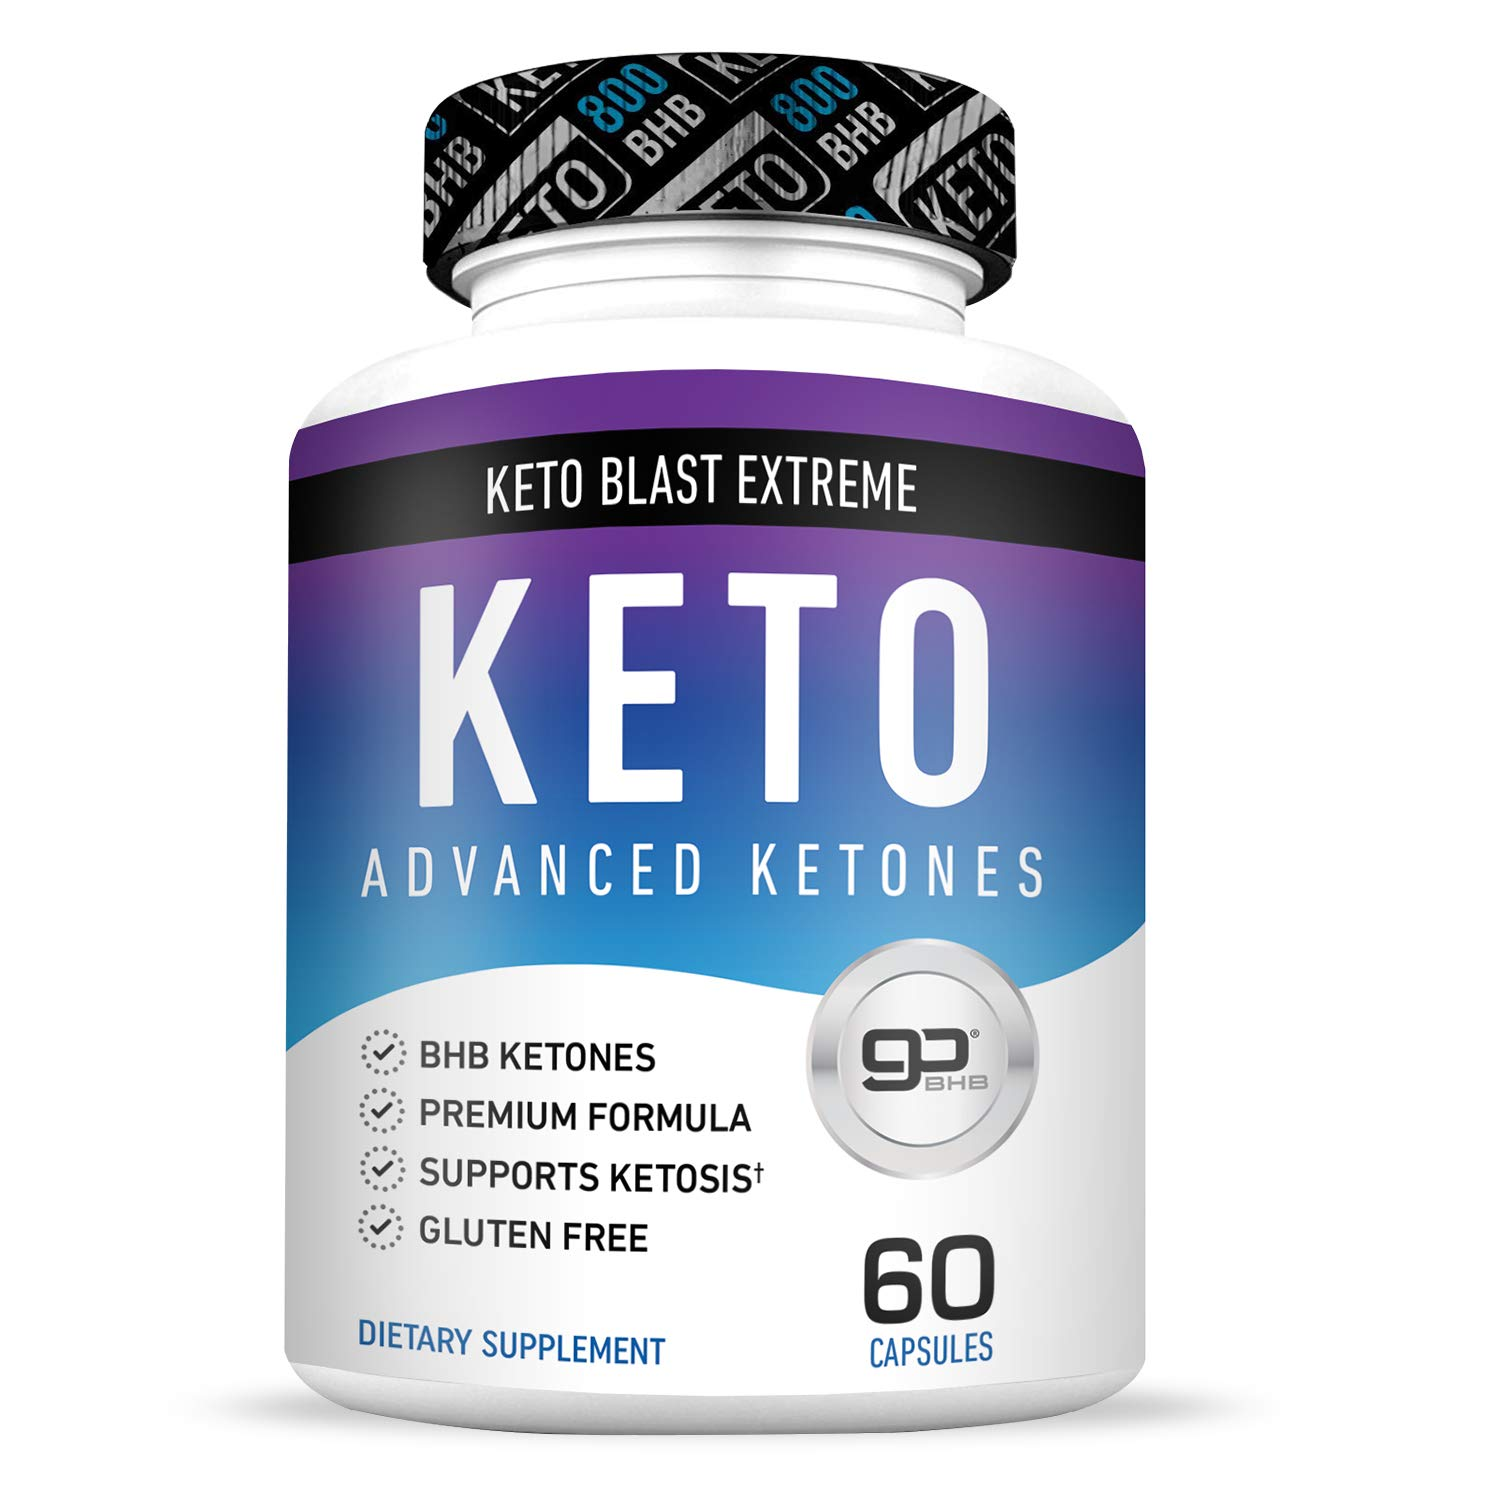 Keto Pills - Real Weight Loss - Lose Unwanted Pounds - Burn Fat Fast - Weight Loss for Women & Men - 60 Capsules